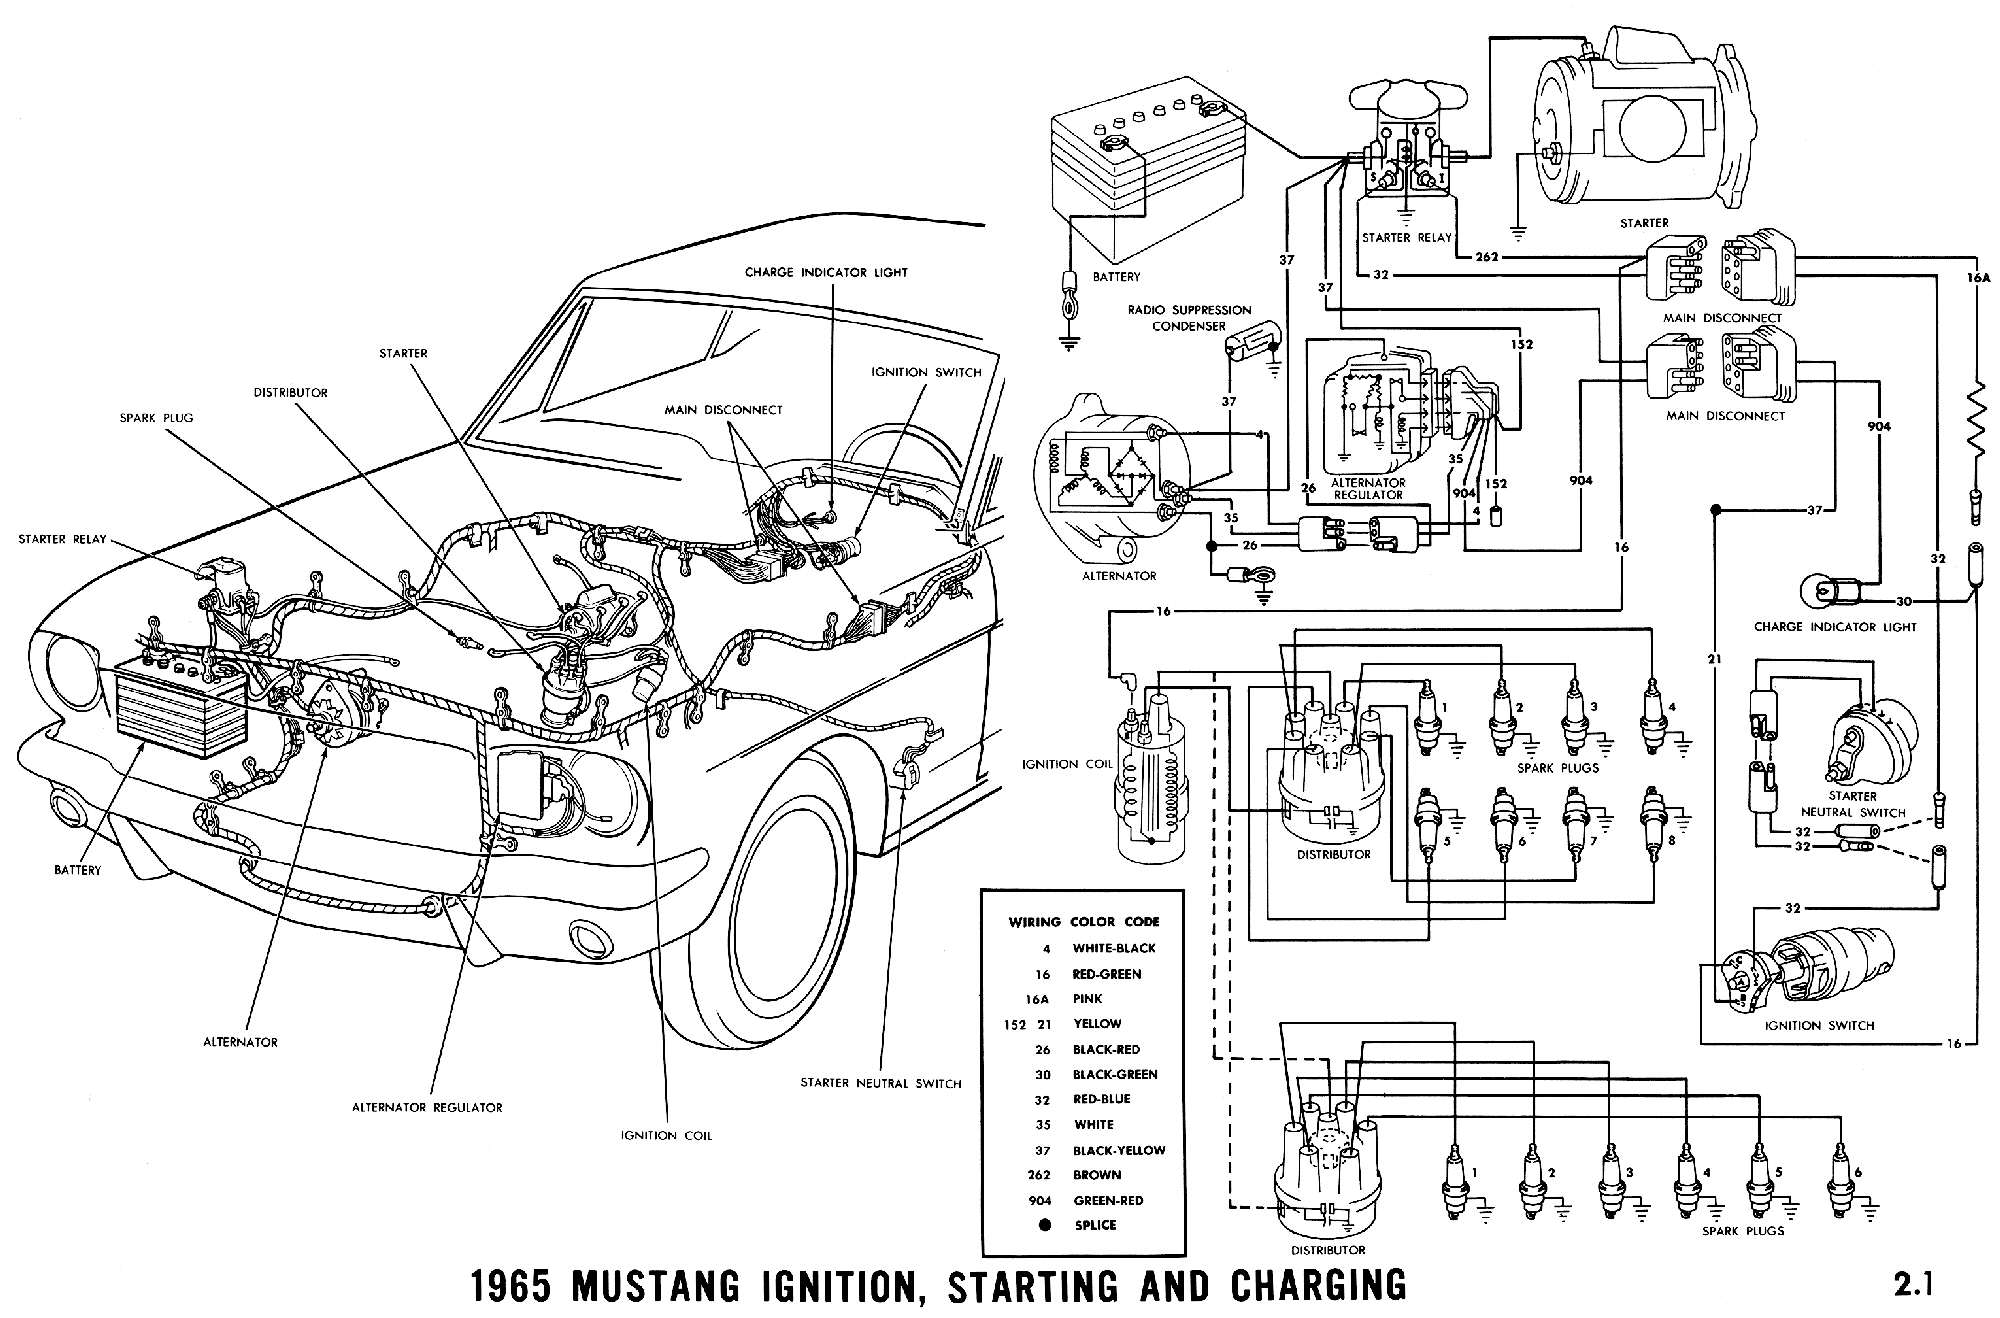 1965c 1965 mustang wiring diagrams average joe restoration 66 mustang wiring diagram at nearapp.co